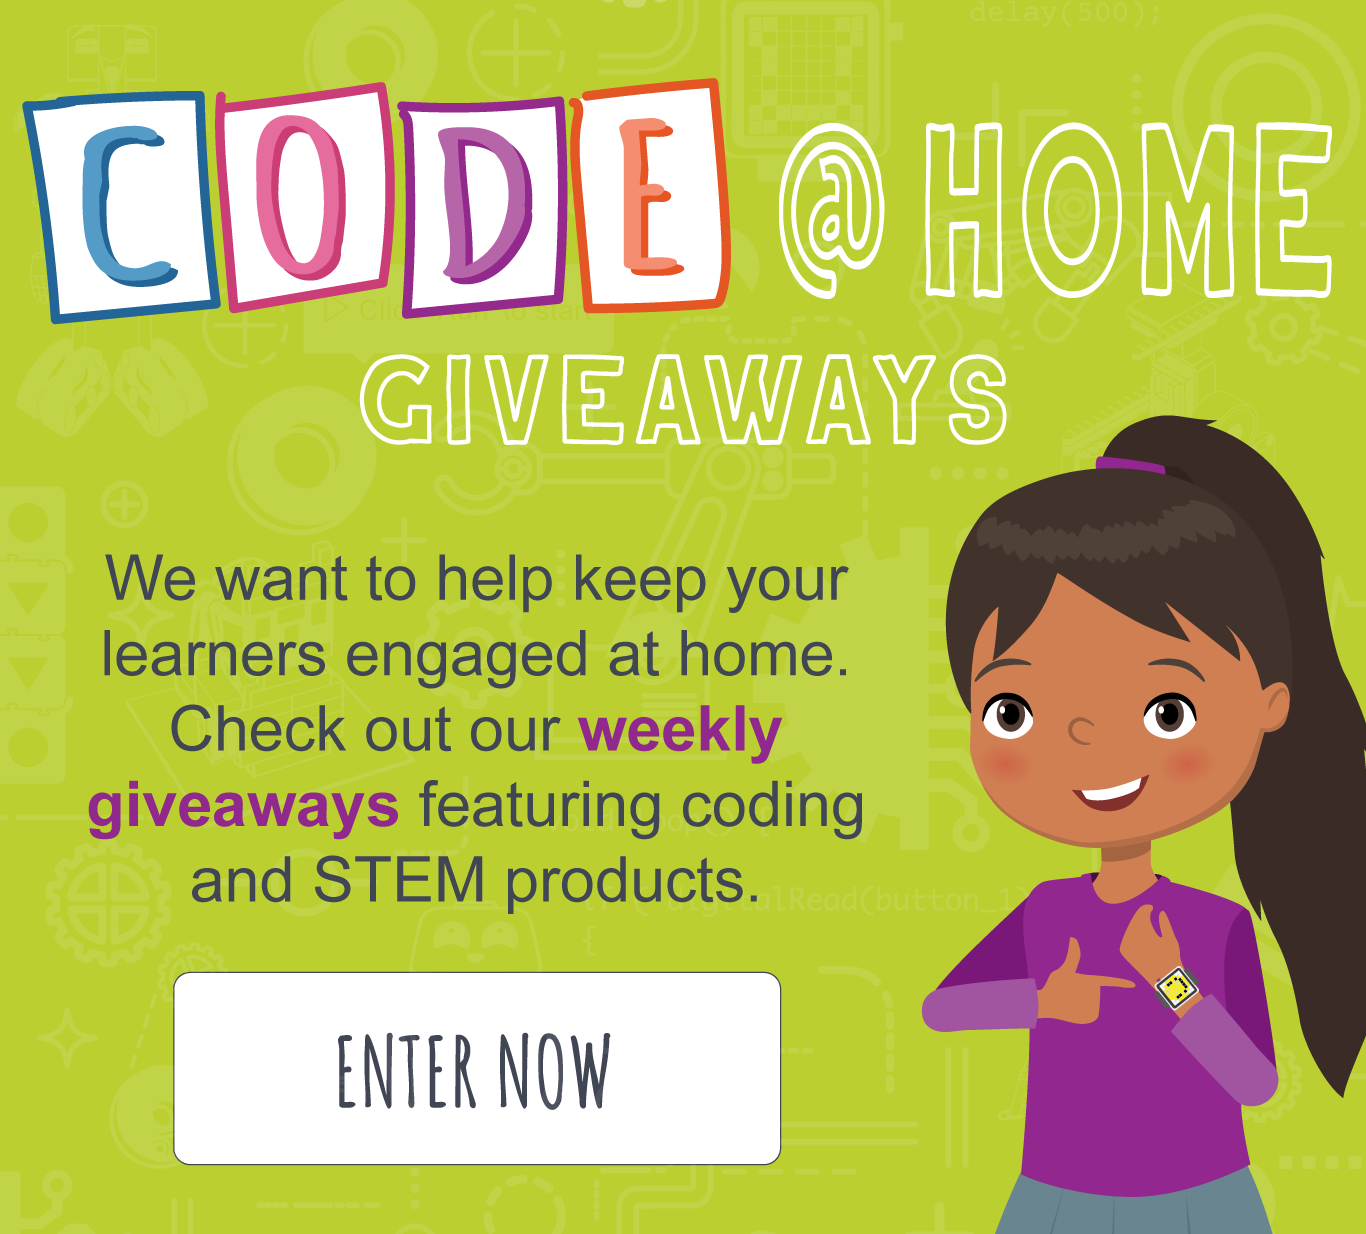 CODE @ Home Giveaways - Enter Now